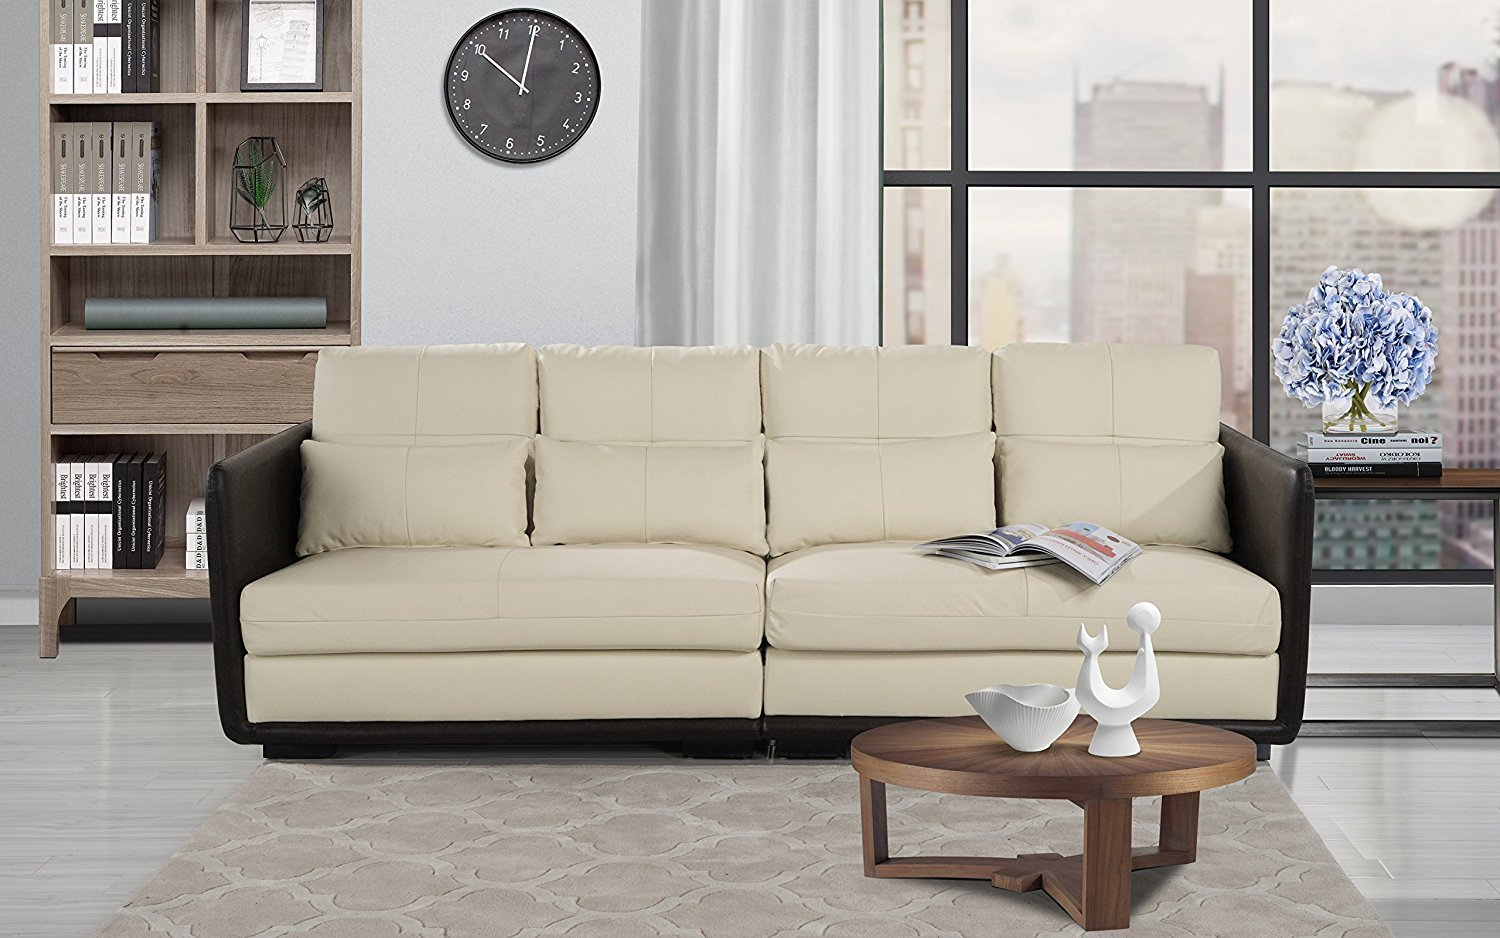 Classic 2 Piece Convertible Living Room Leather Sofa, Adjustable Couch  (Beige)